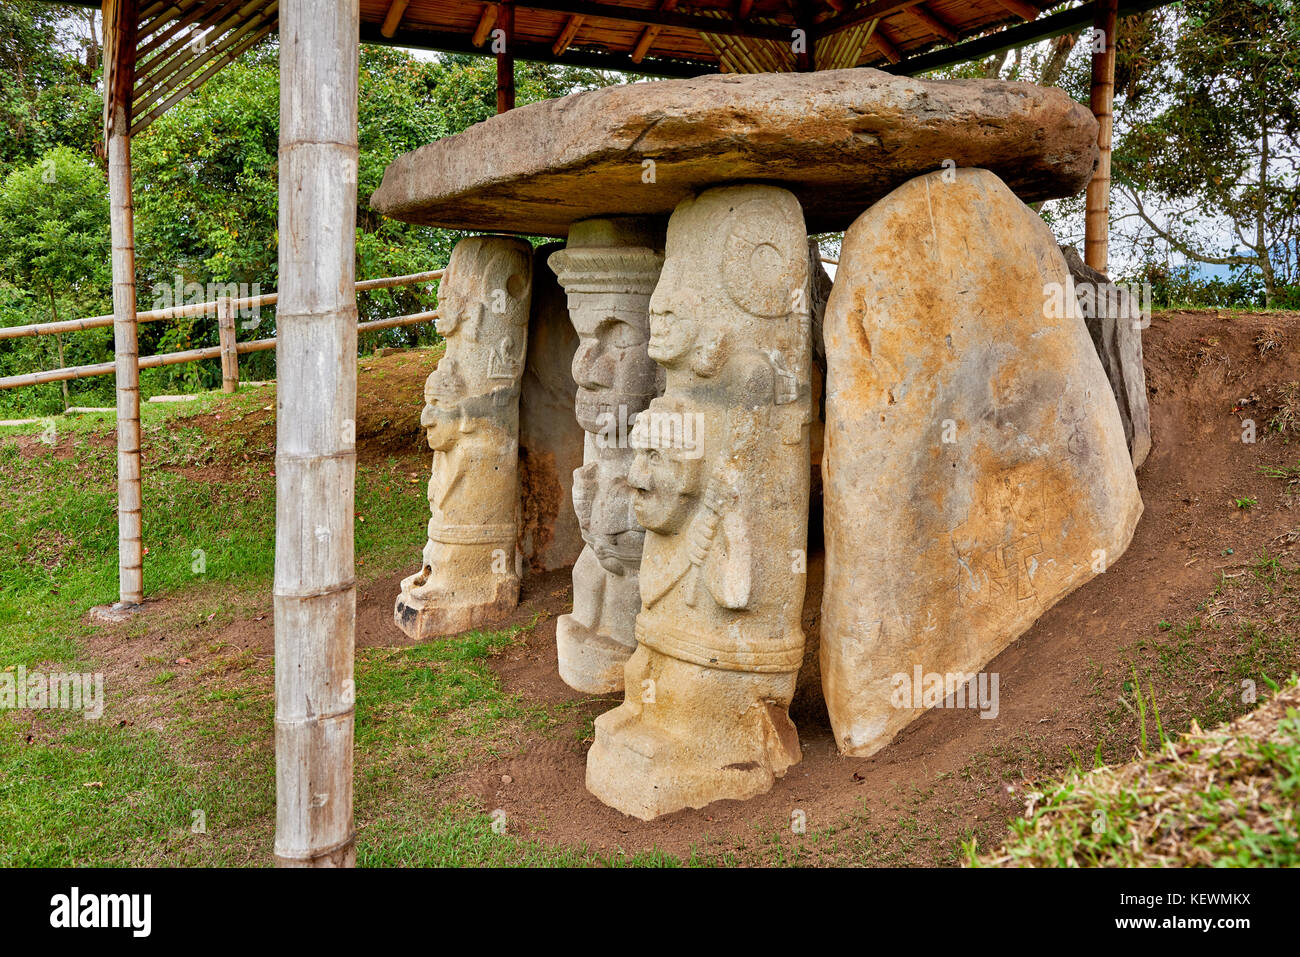 Precolombian statues in Mesita A of archaeological park Parque Arqueologico De San Agustin, Colombia, South America - Stock Image